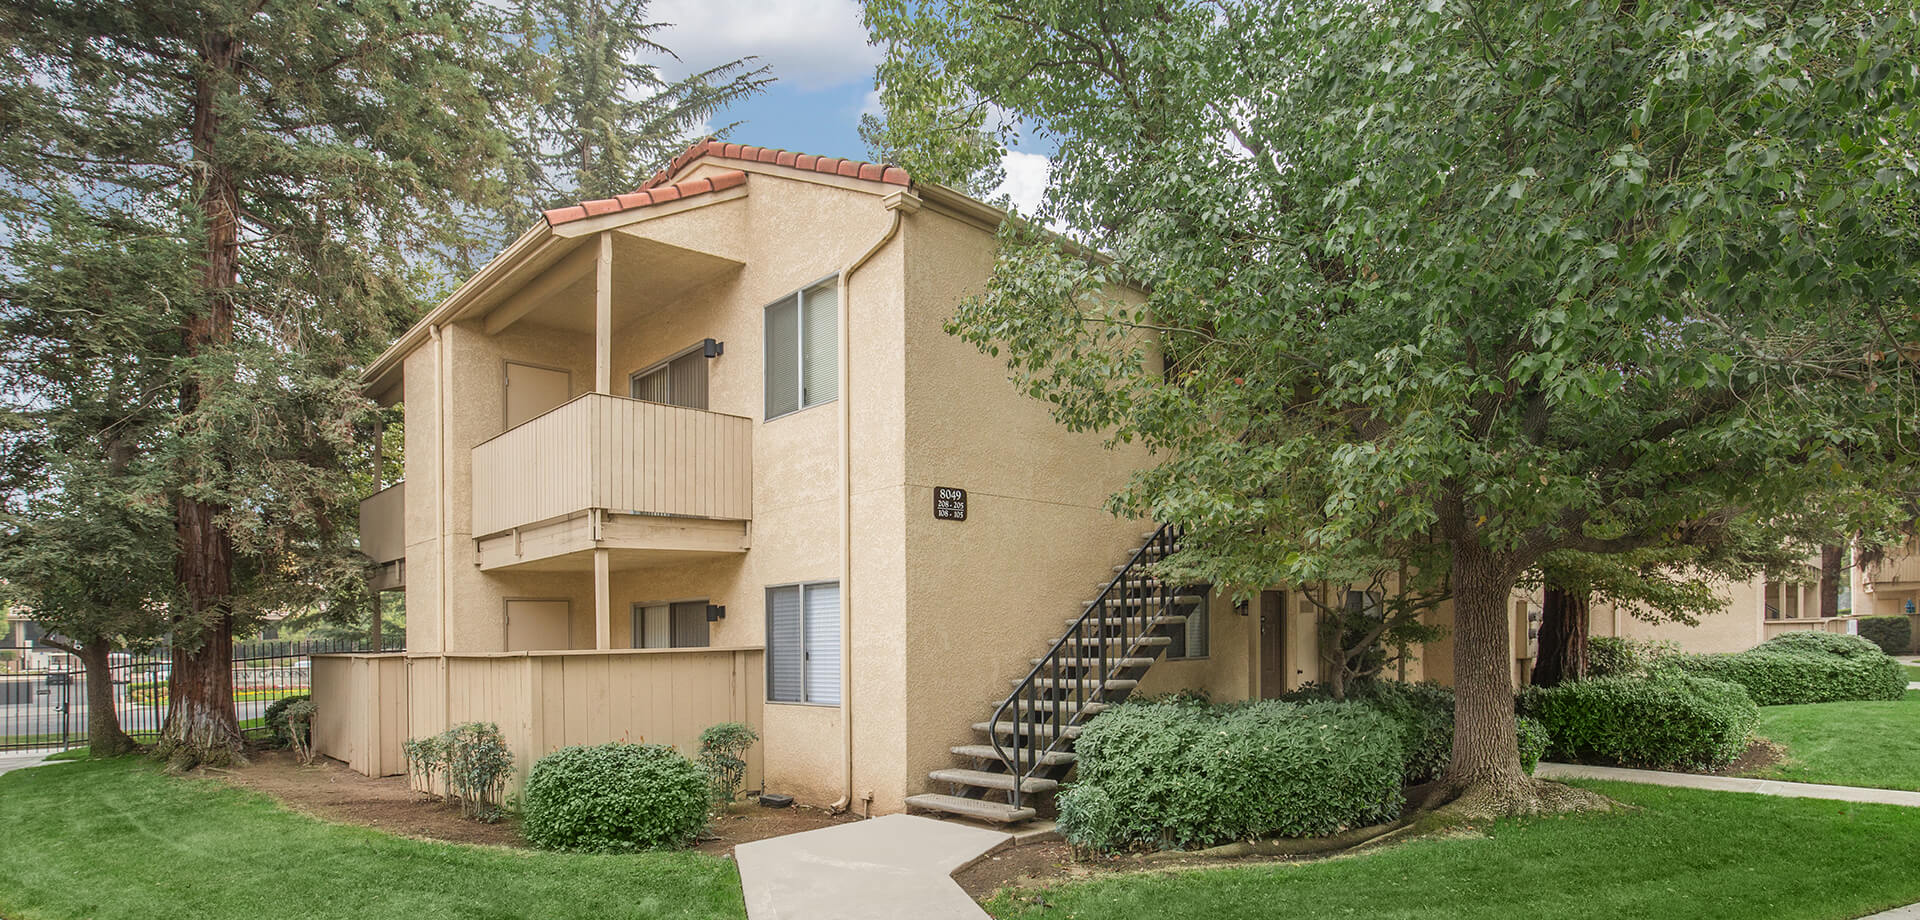 Terrace View Apartments - Apartments in Fresno, CA